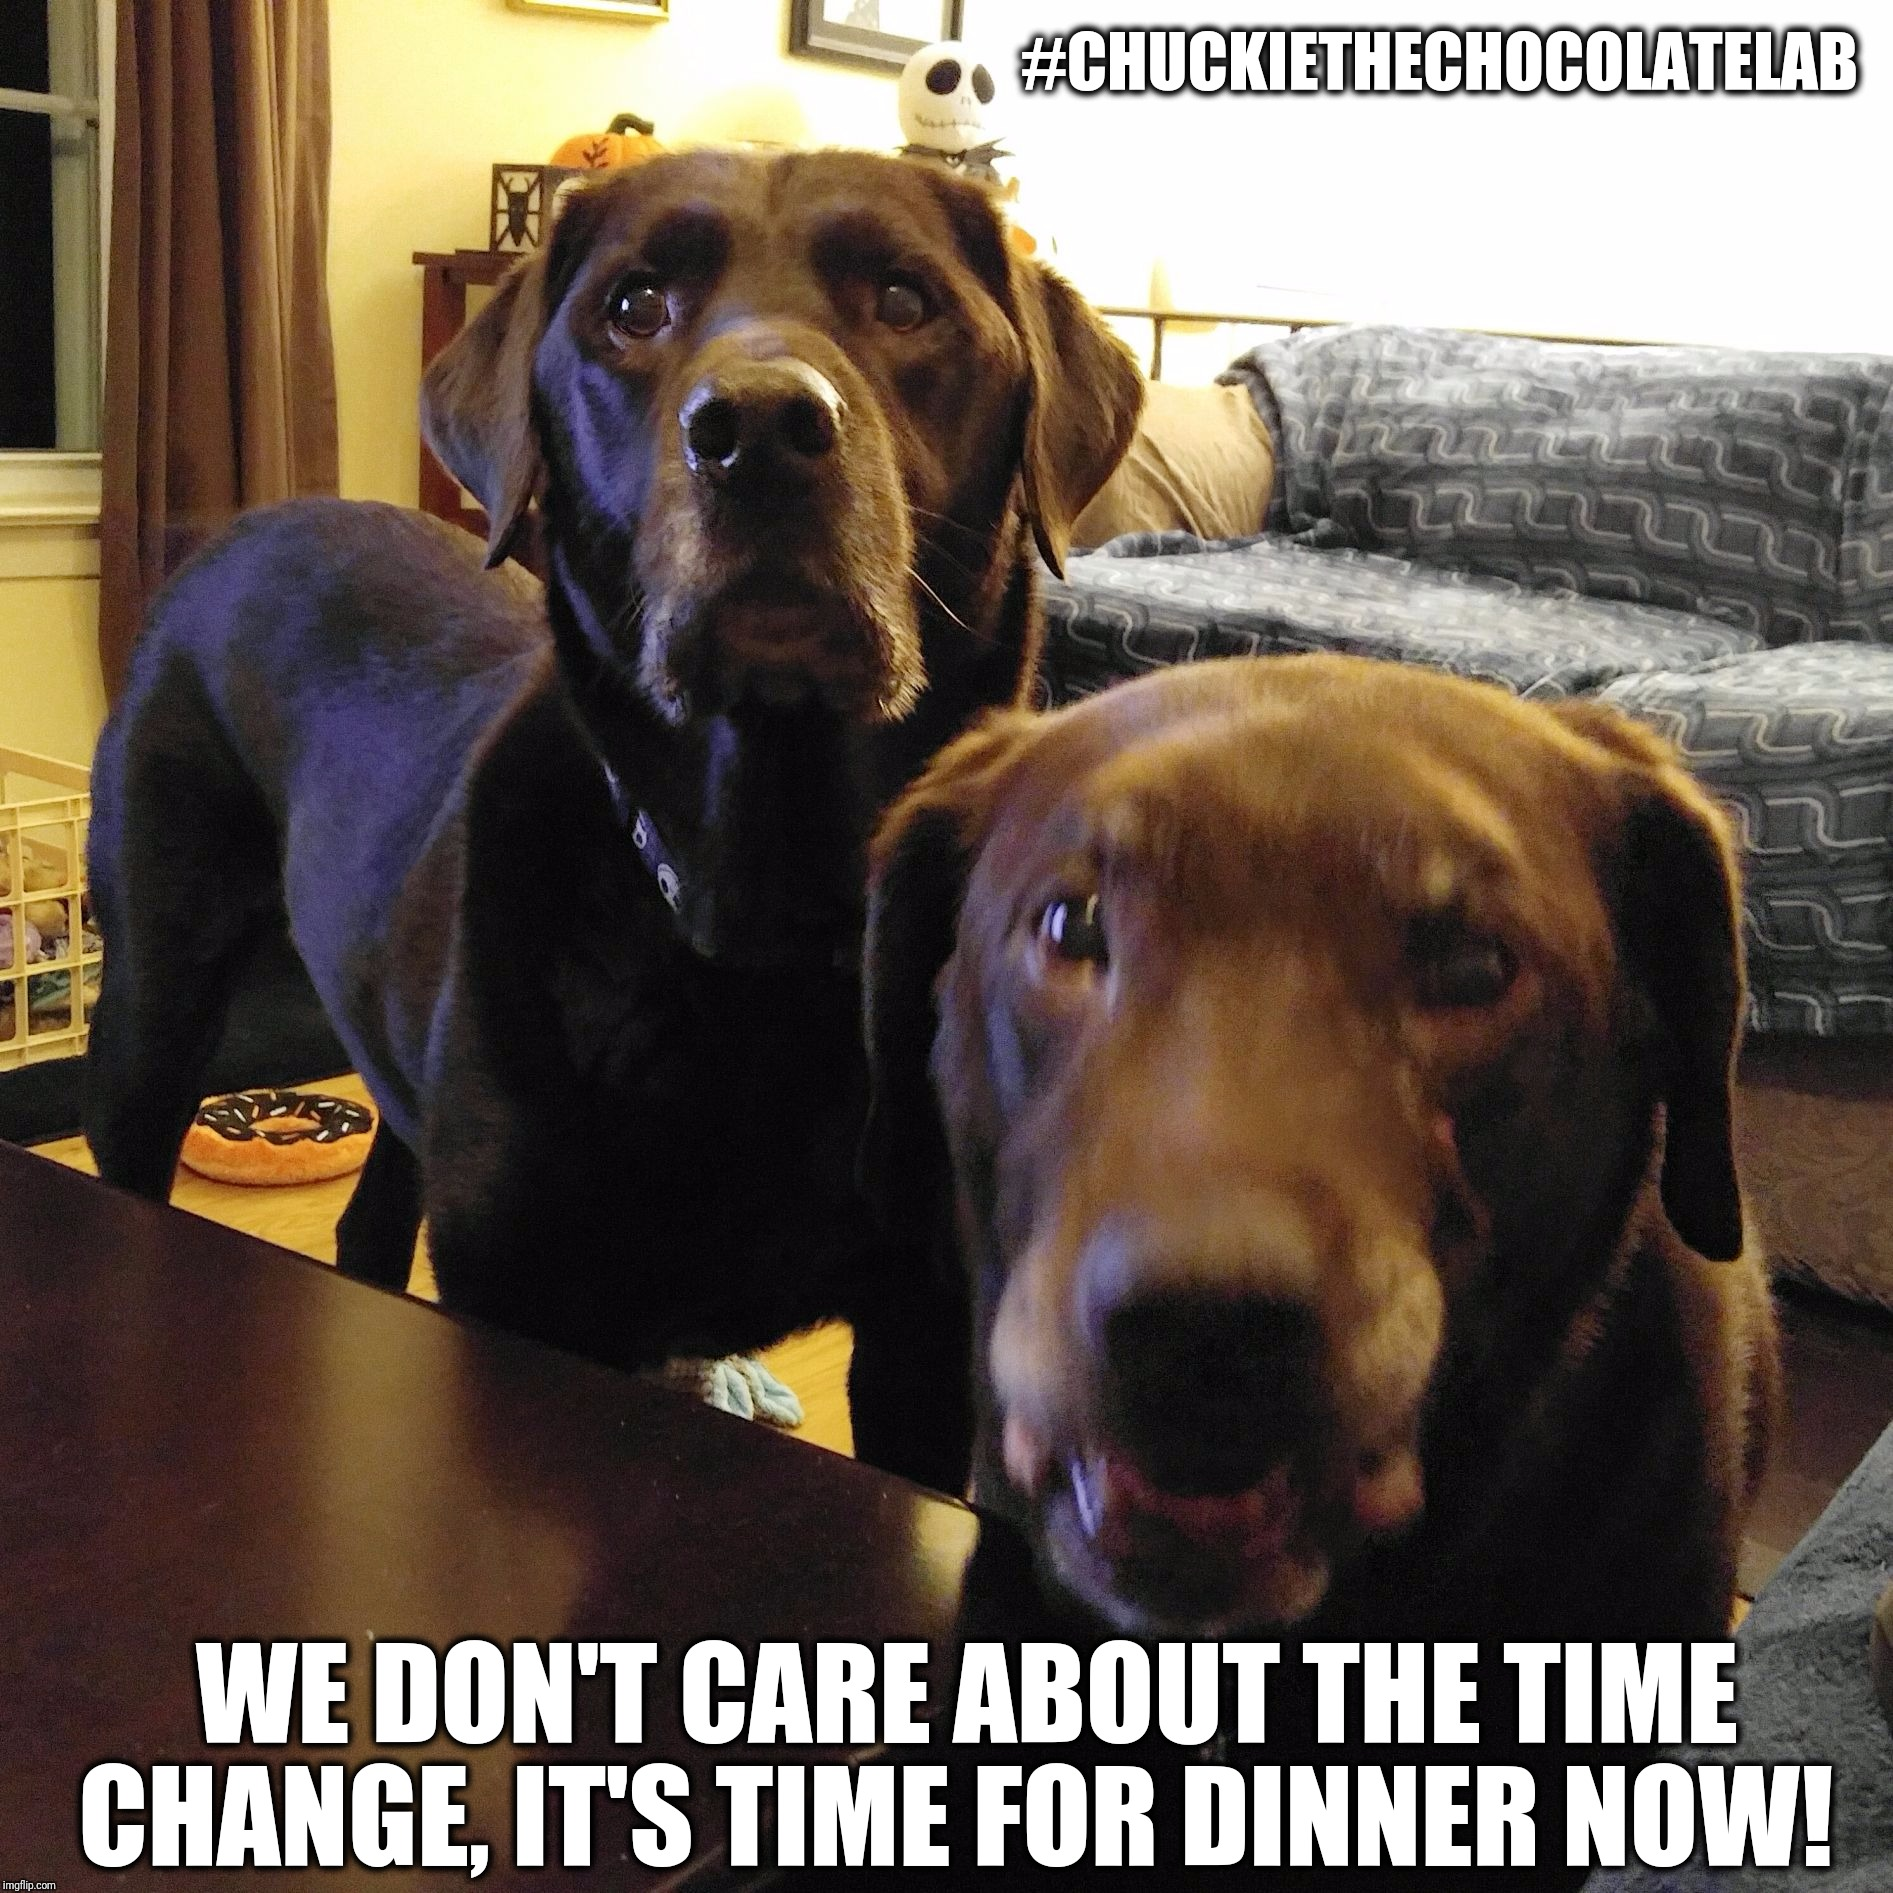 Time change |  #CHUCKIETHECHOCOLATELAB; WE DON'T CARE ABOUT THE TIME CHANGE, IT'S TIME FOR DINNER NOW! | image tagged in chuckie the chocolate lab teamchuckie,time change,daylight saving time,funny,dogs,memes | made w/ Imgflip meme maker